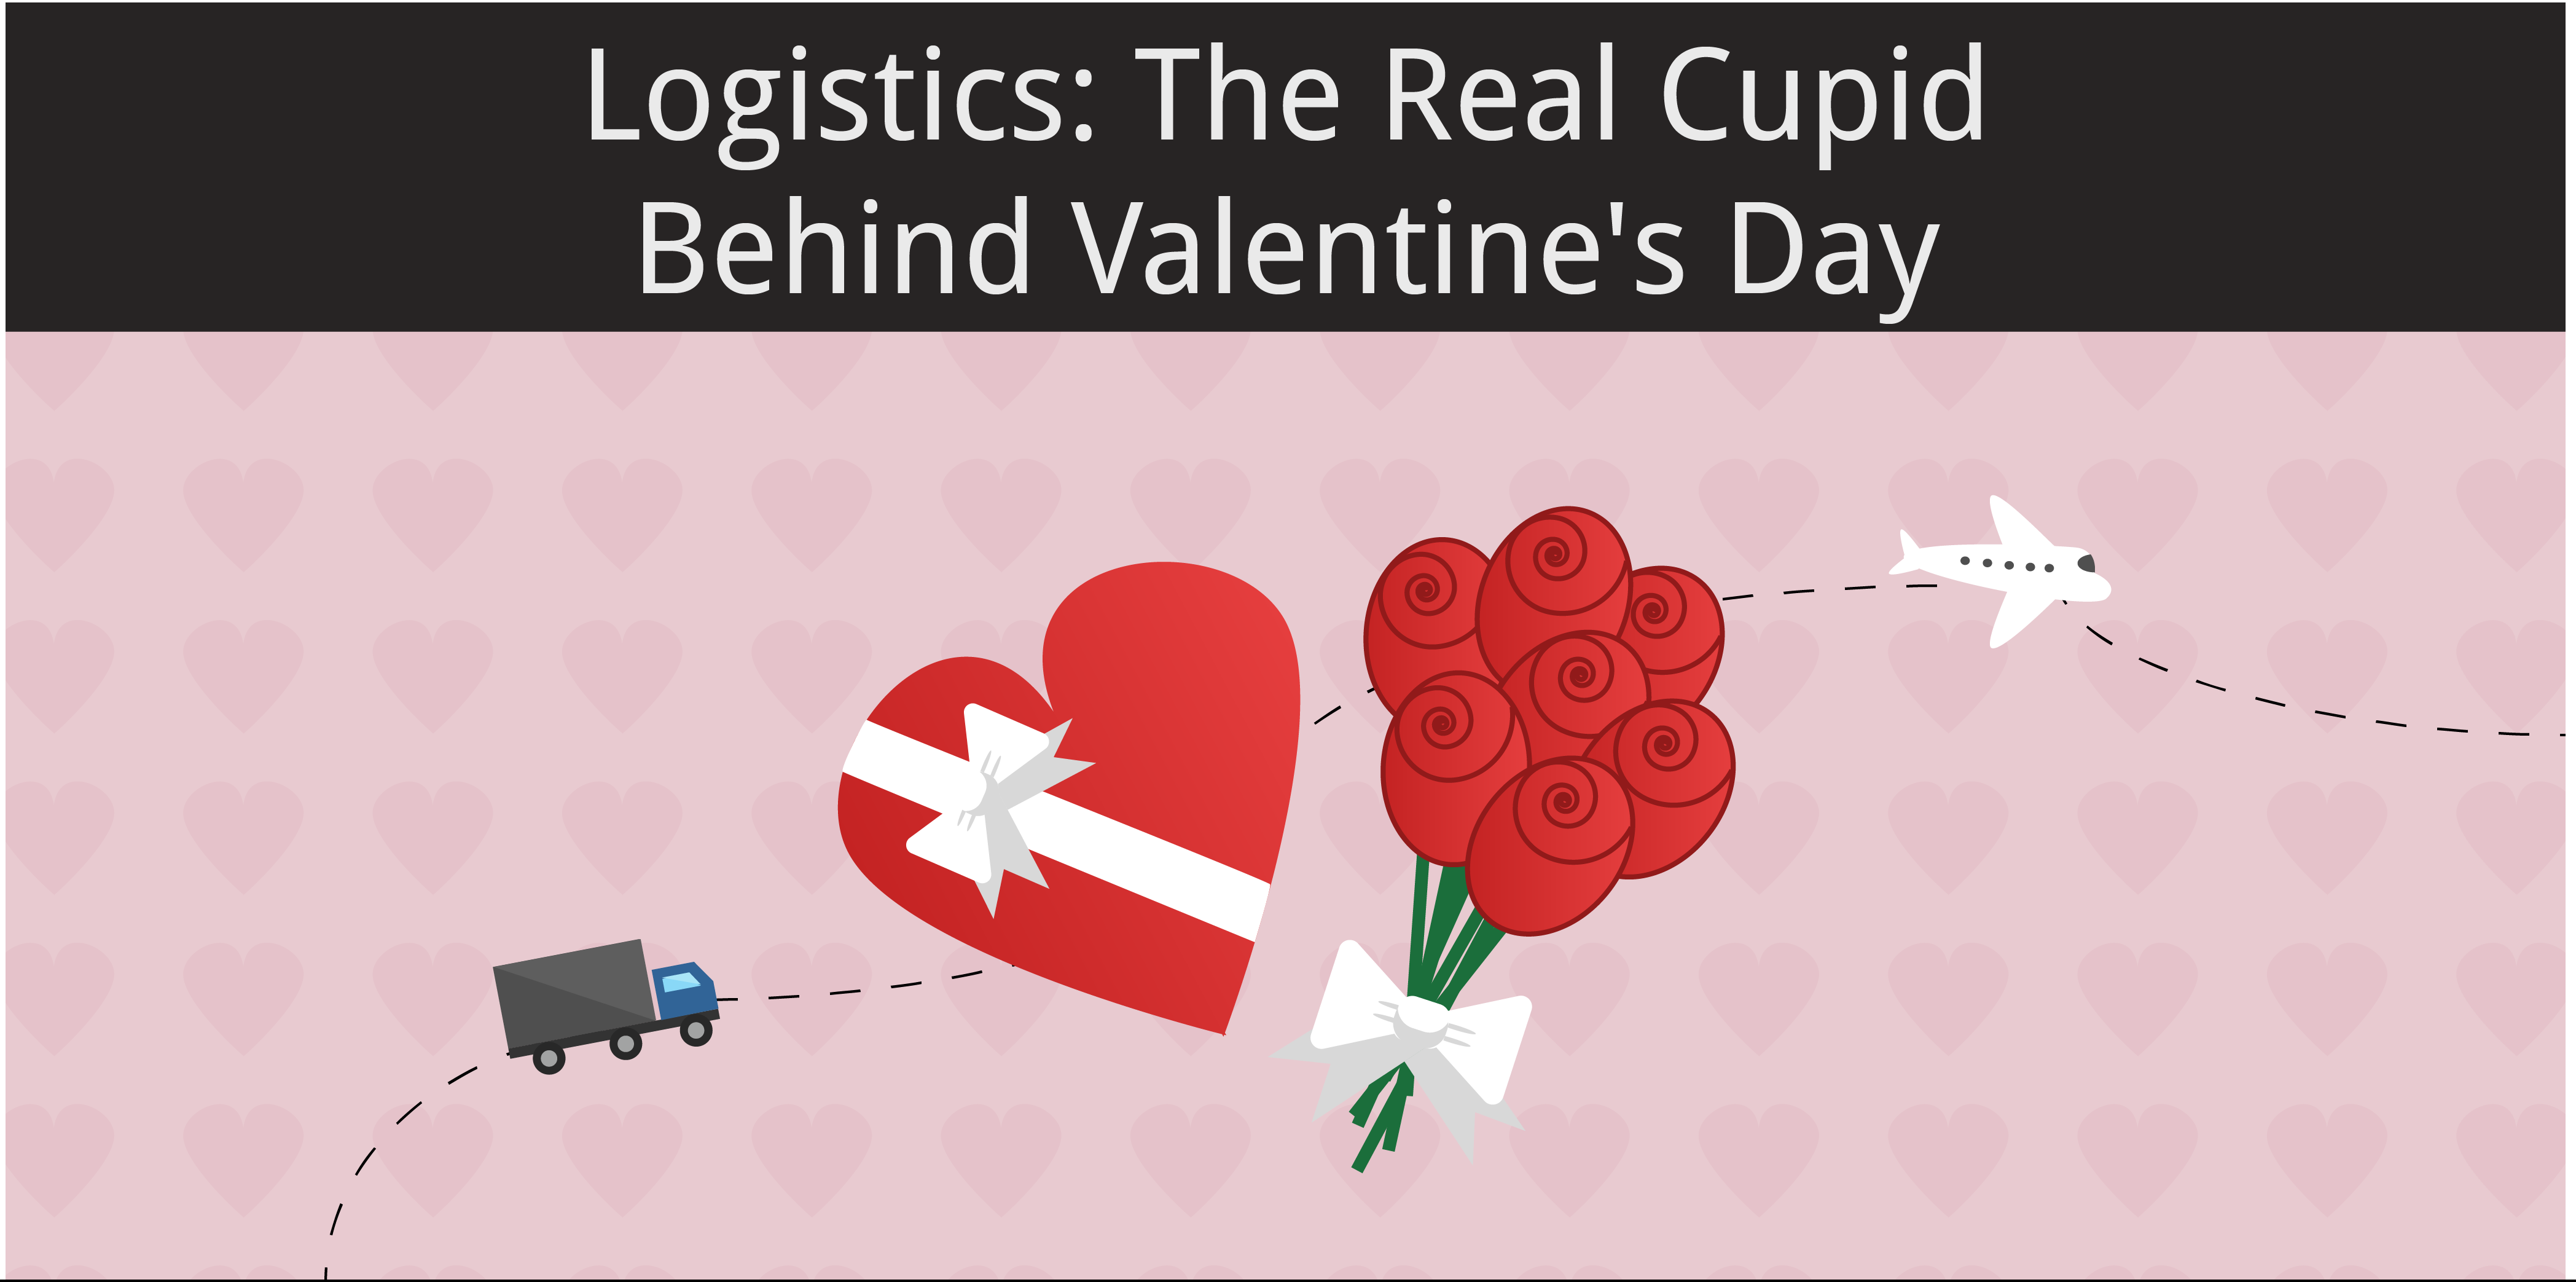 logistics-the-real-cupid-behind-valentines-day